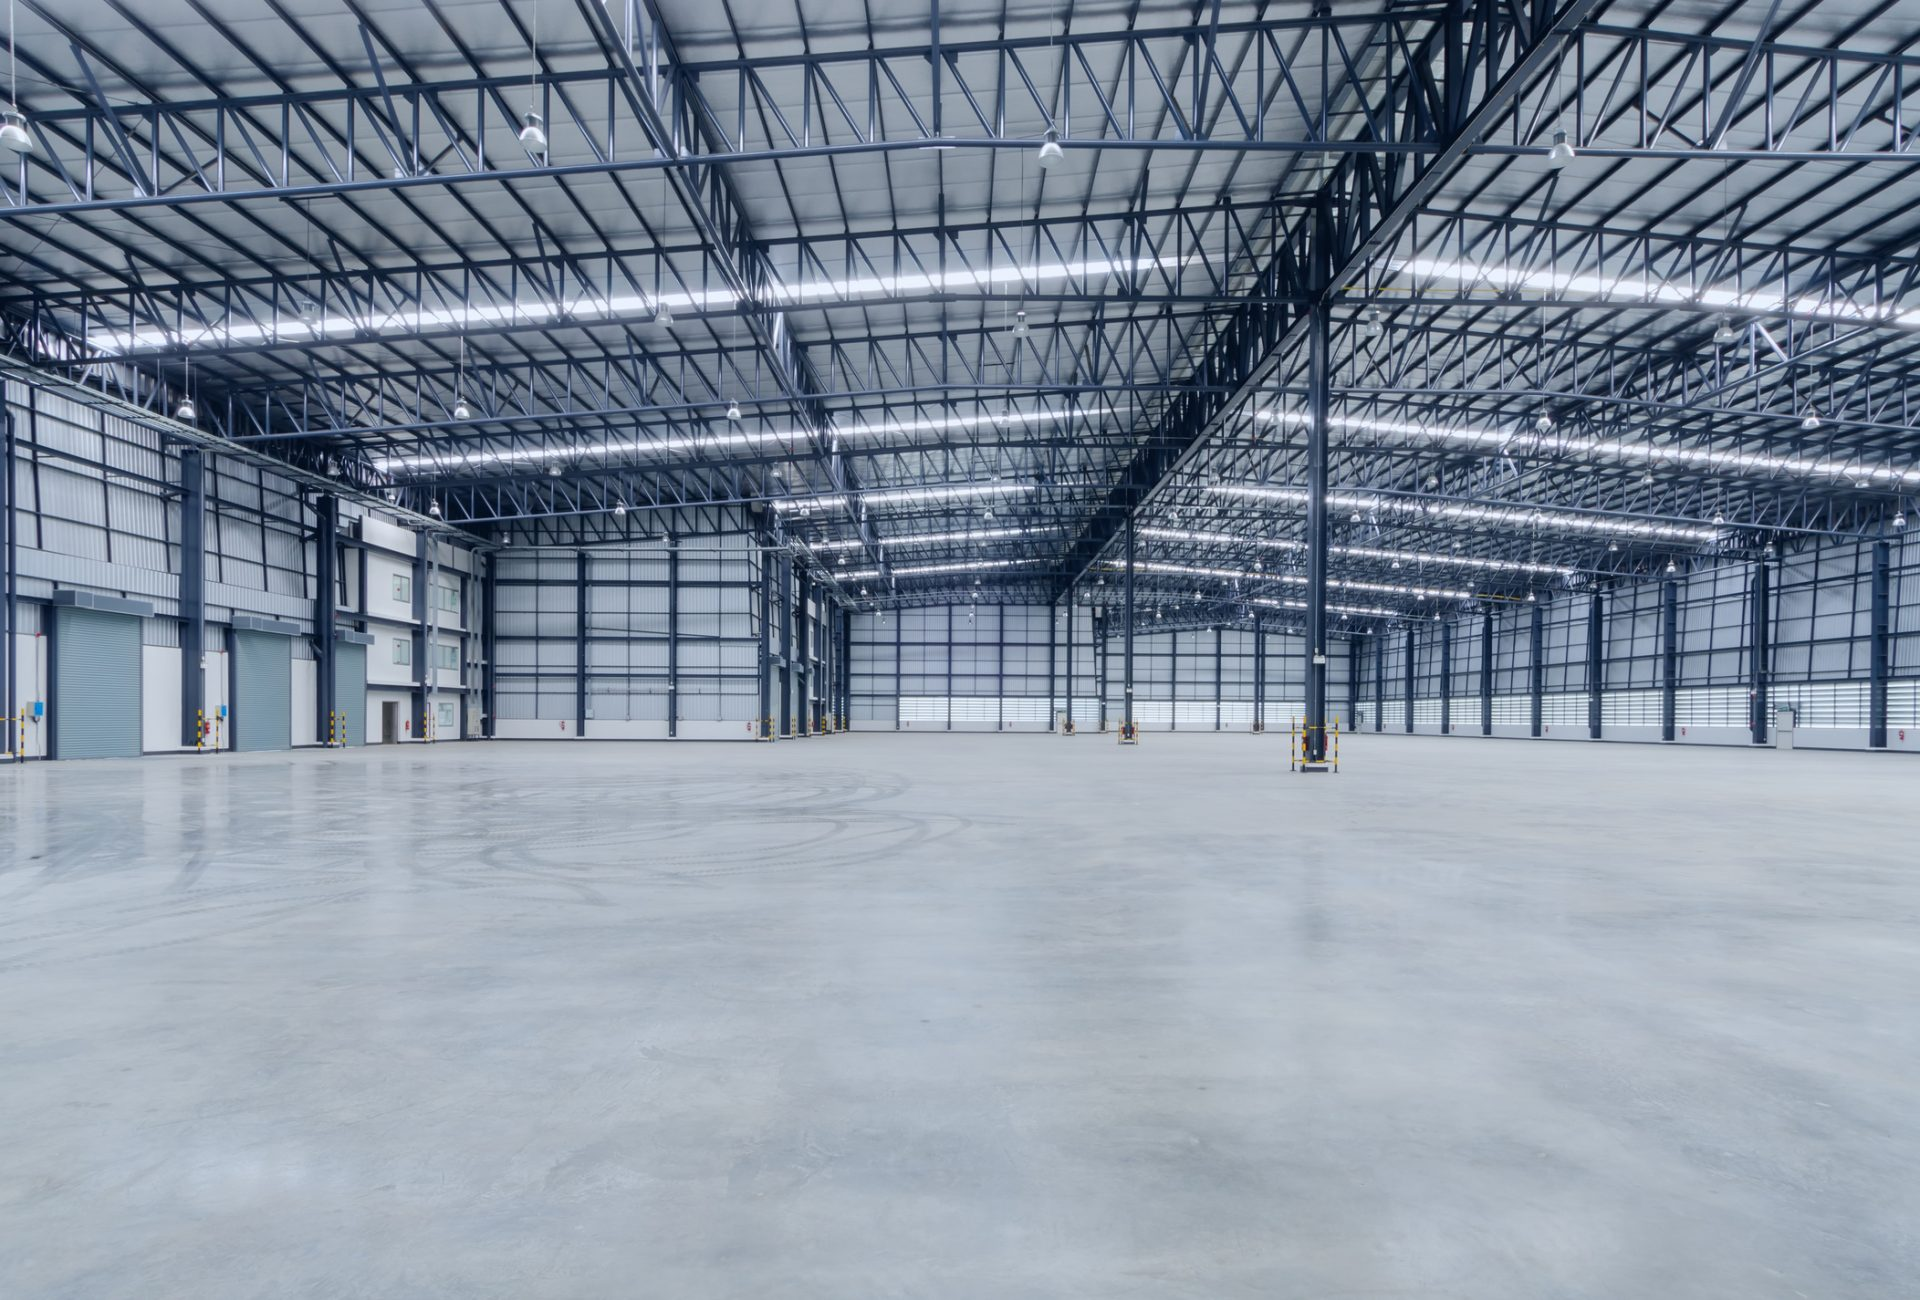 Interior of empty warehouse